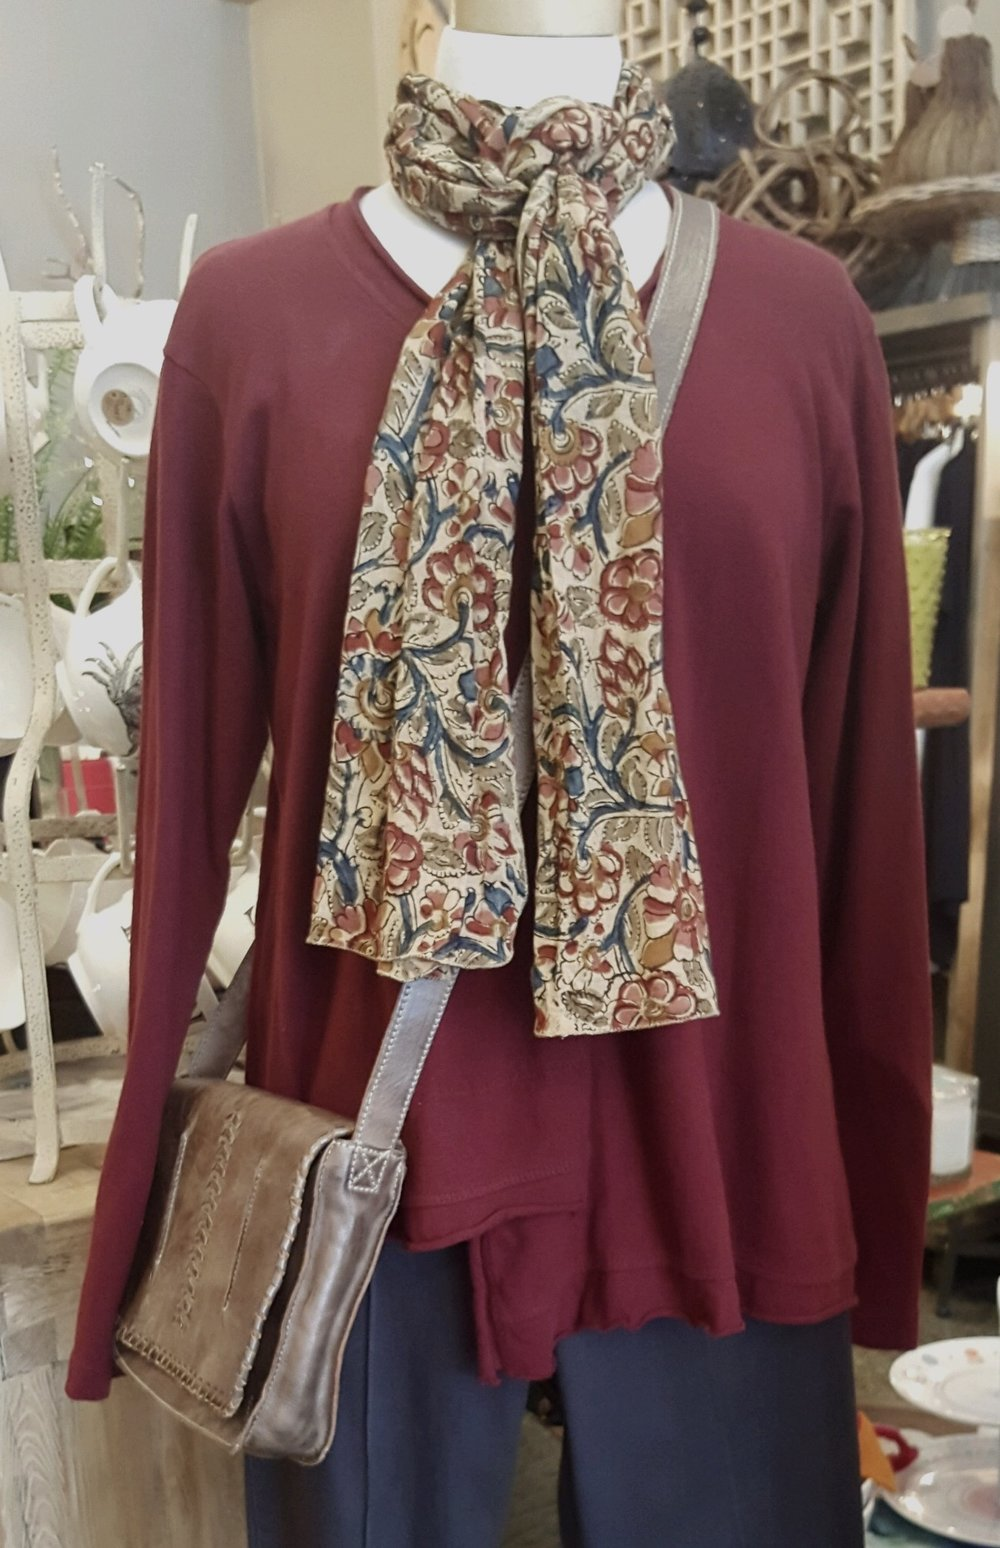 FullSizeRender_2 copy.jpg